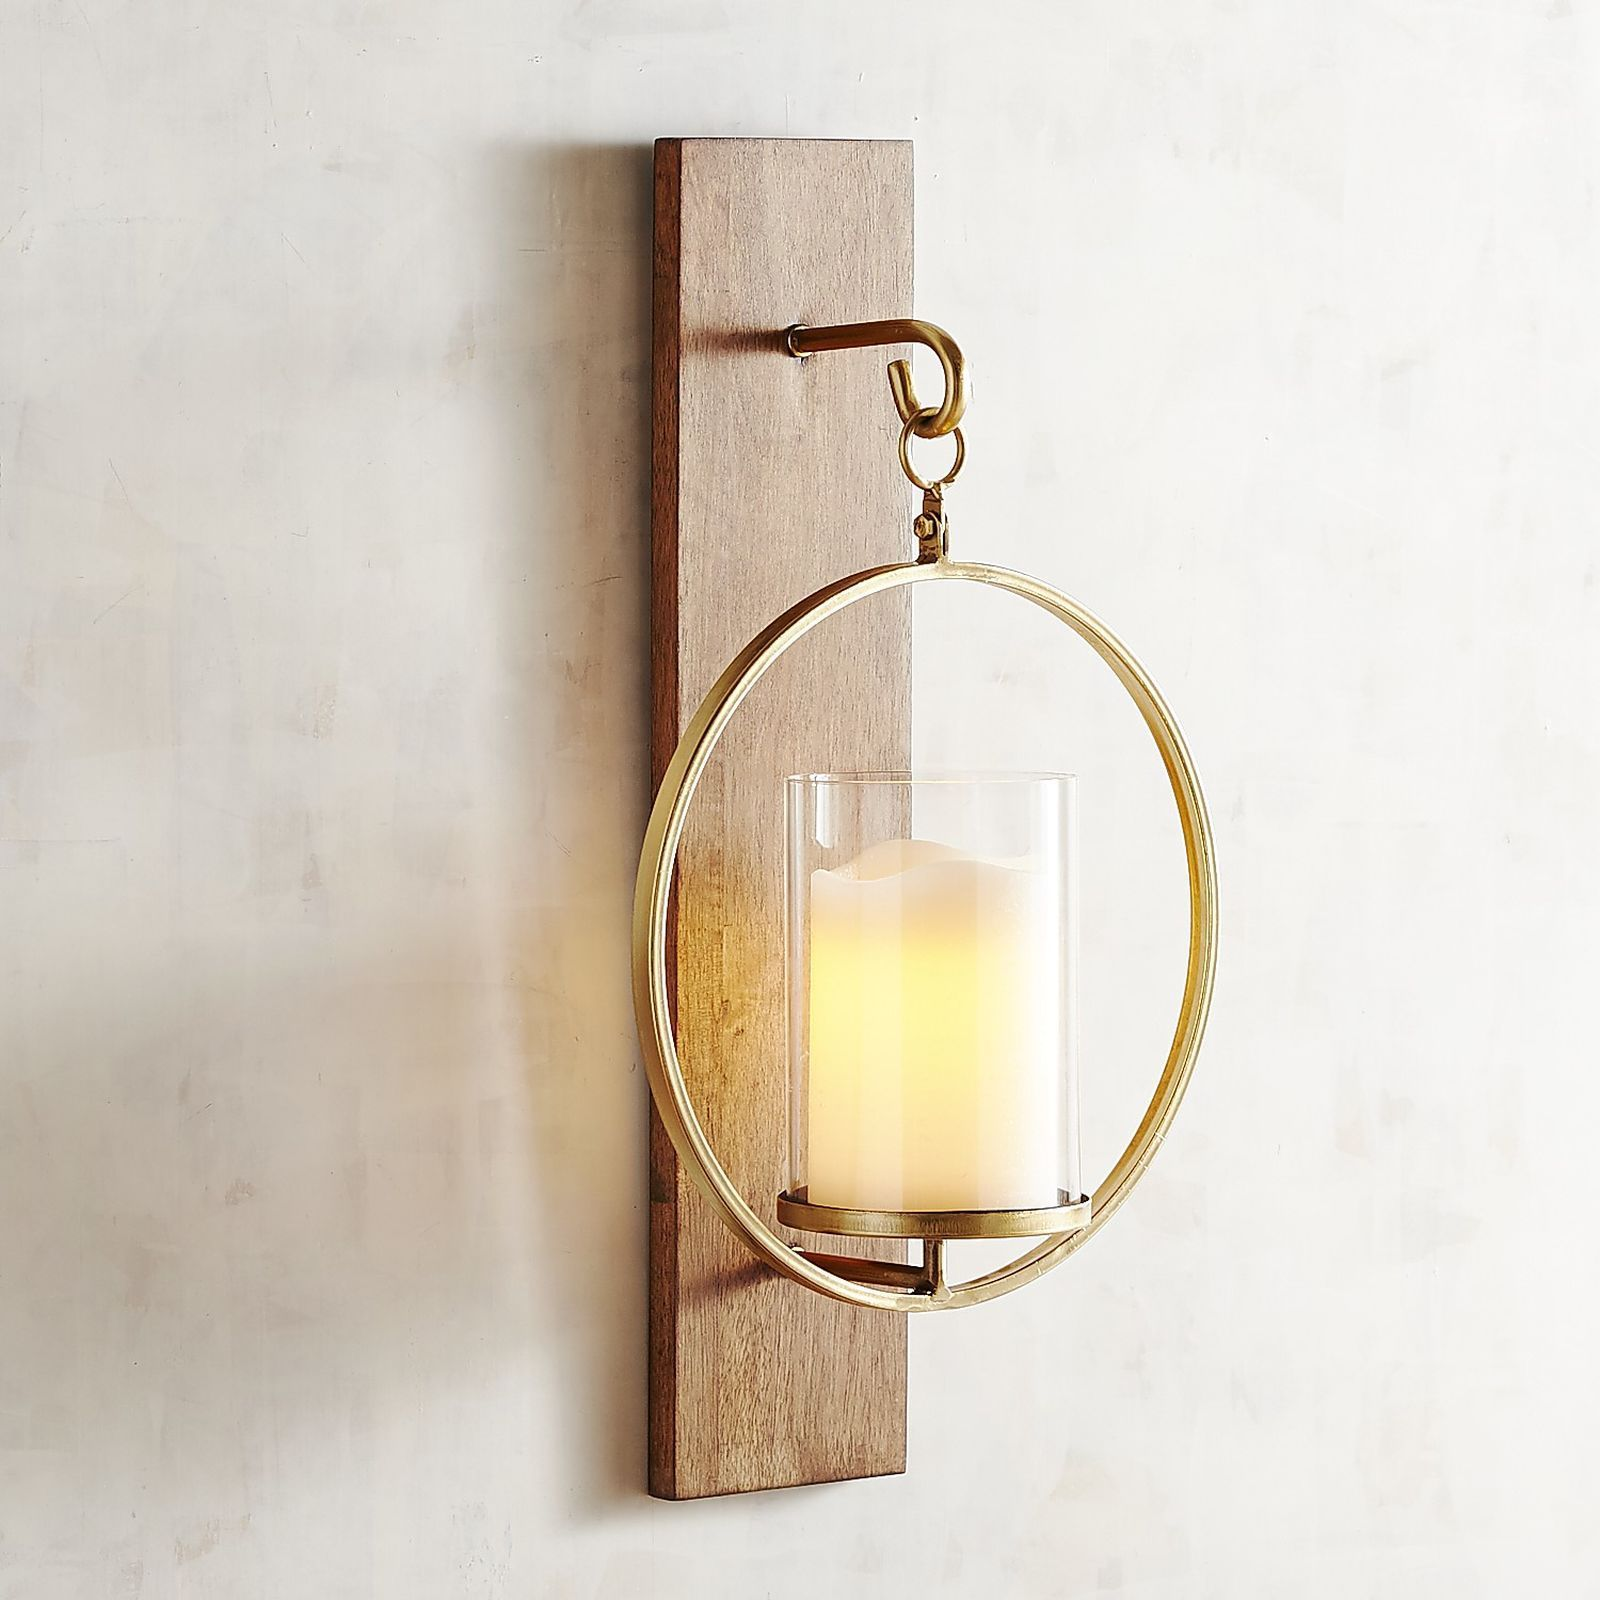 11 Candle Sconces That Create The Coziest Atmosphere Ever Wall Candle Holders Wall Mounted Candle Holders Candle Wall Sconces